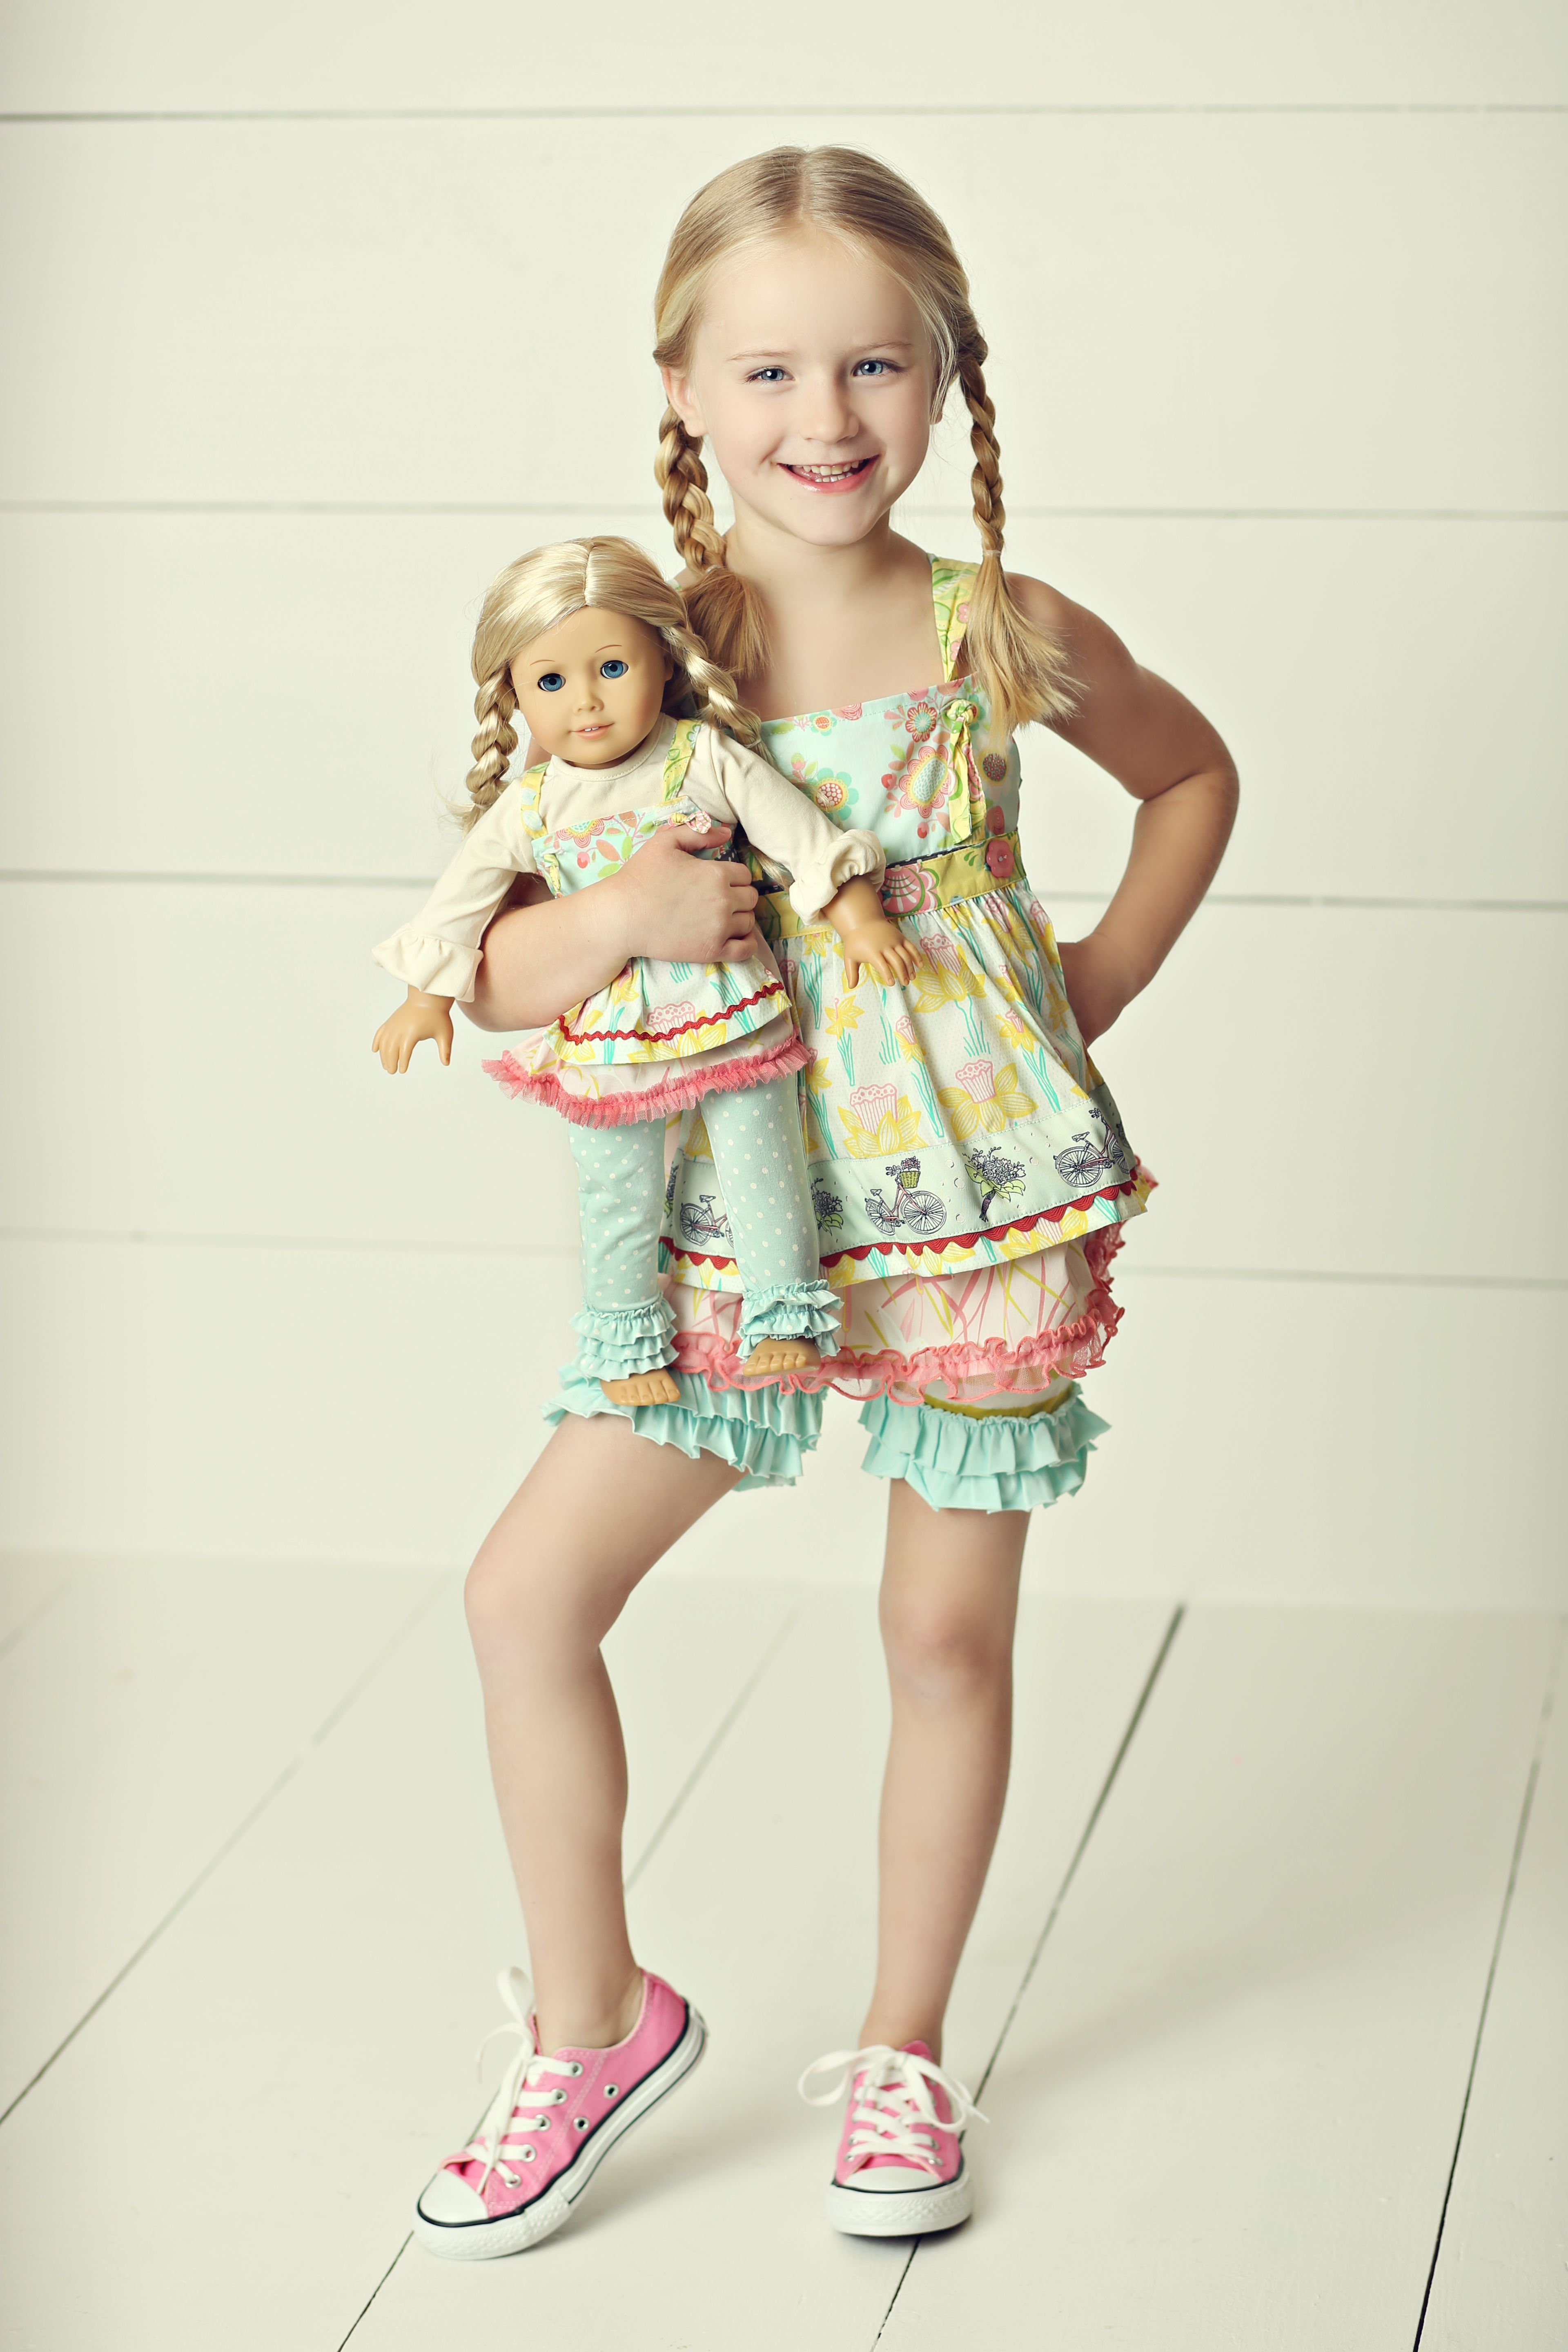 Ma matilda jane good luck trunk coupon code - Madelyn Loves Her Matching Doll Outfit Spring In The Meadow Knot Top More Than Frills Shorties And Promotional Doll Outfit